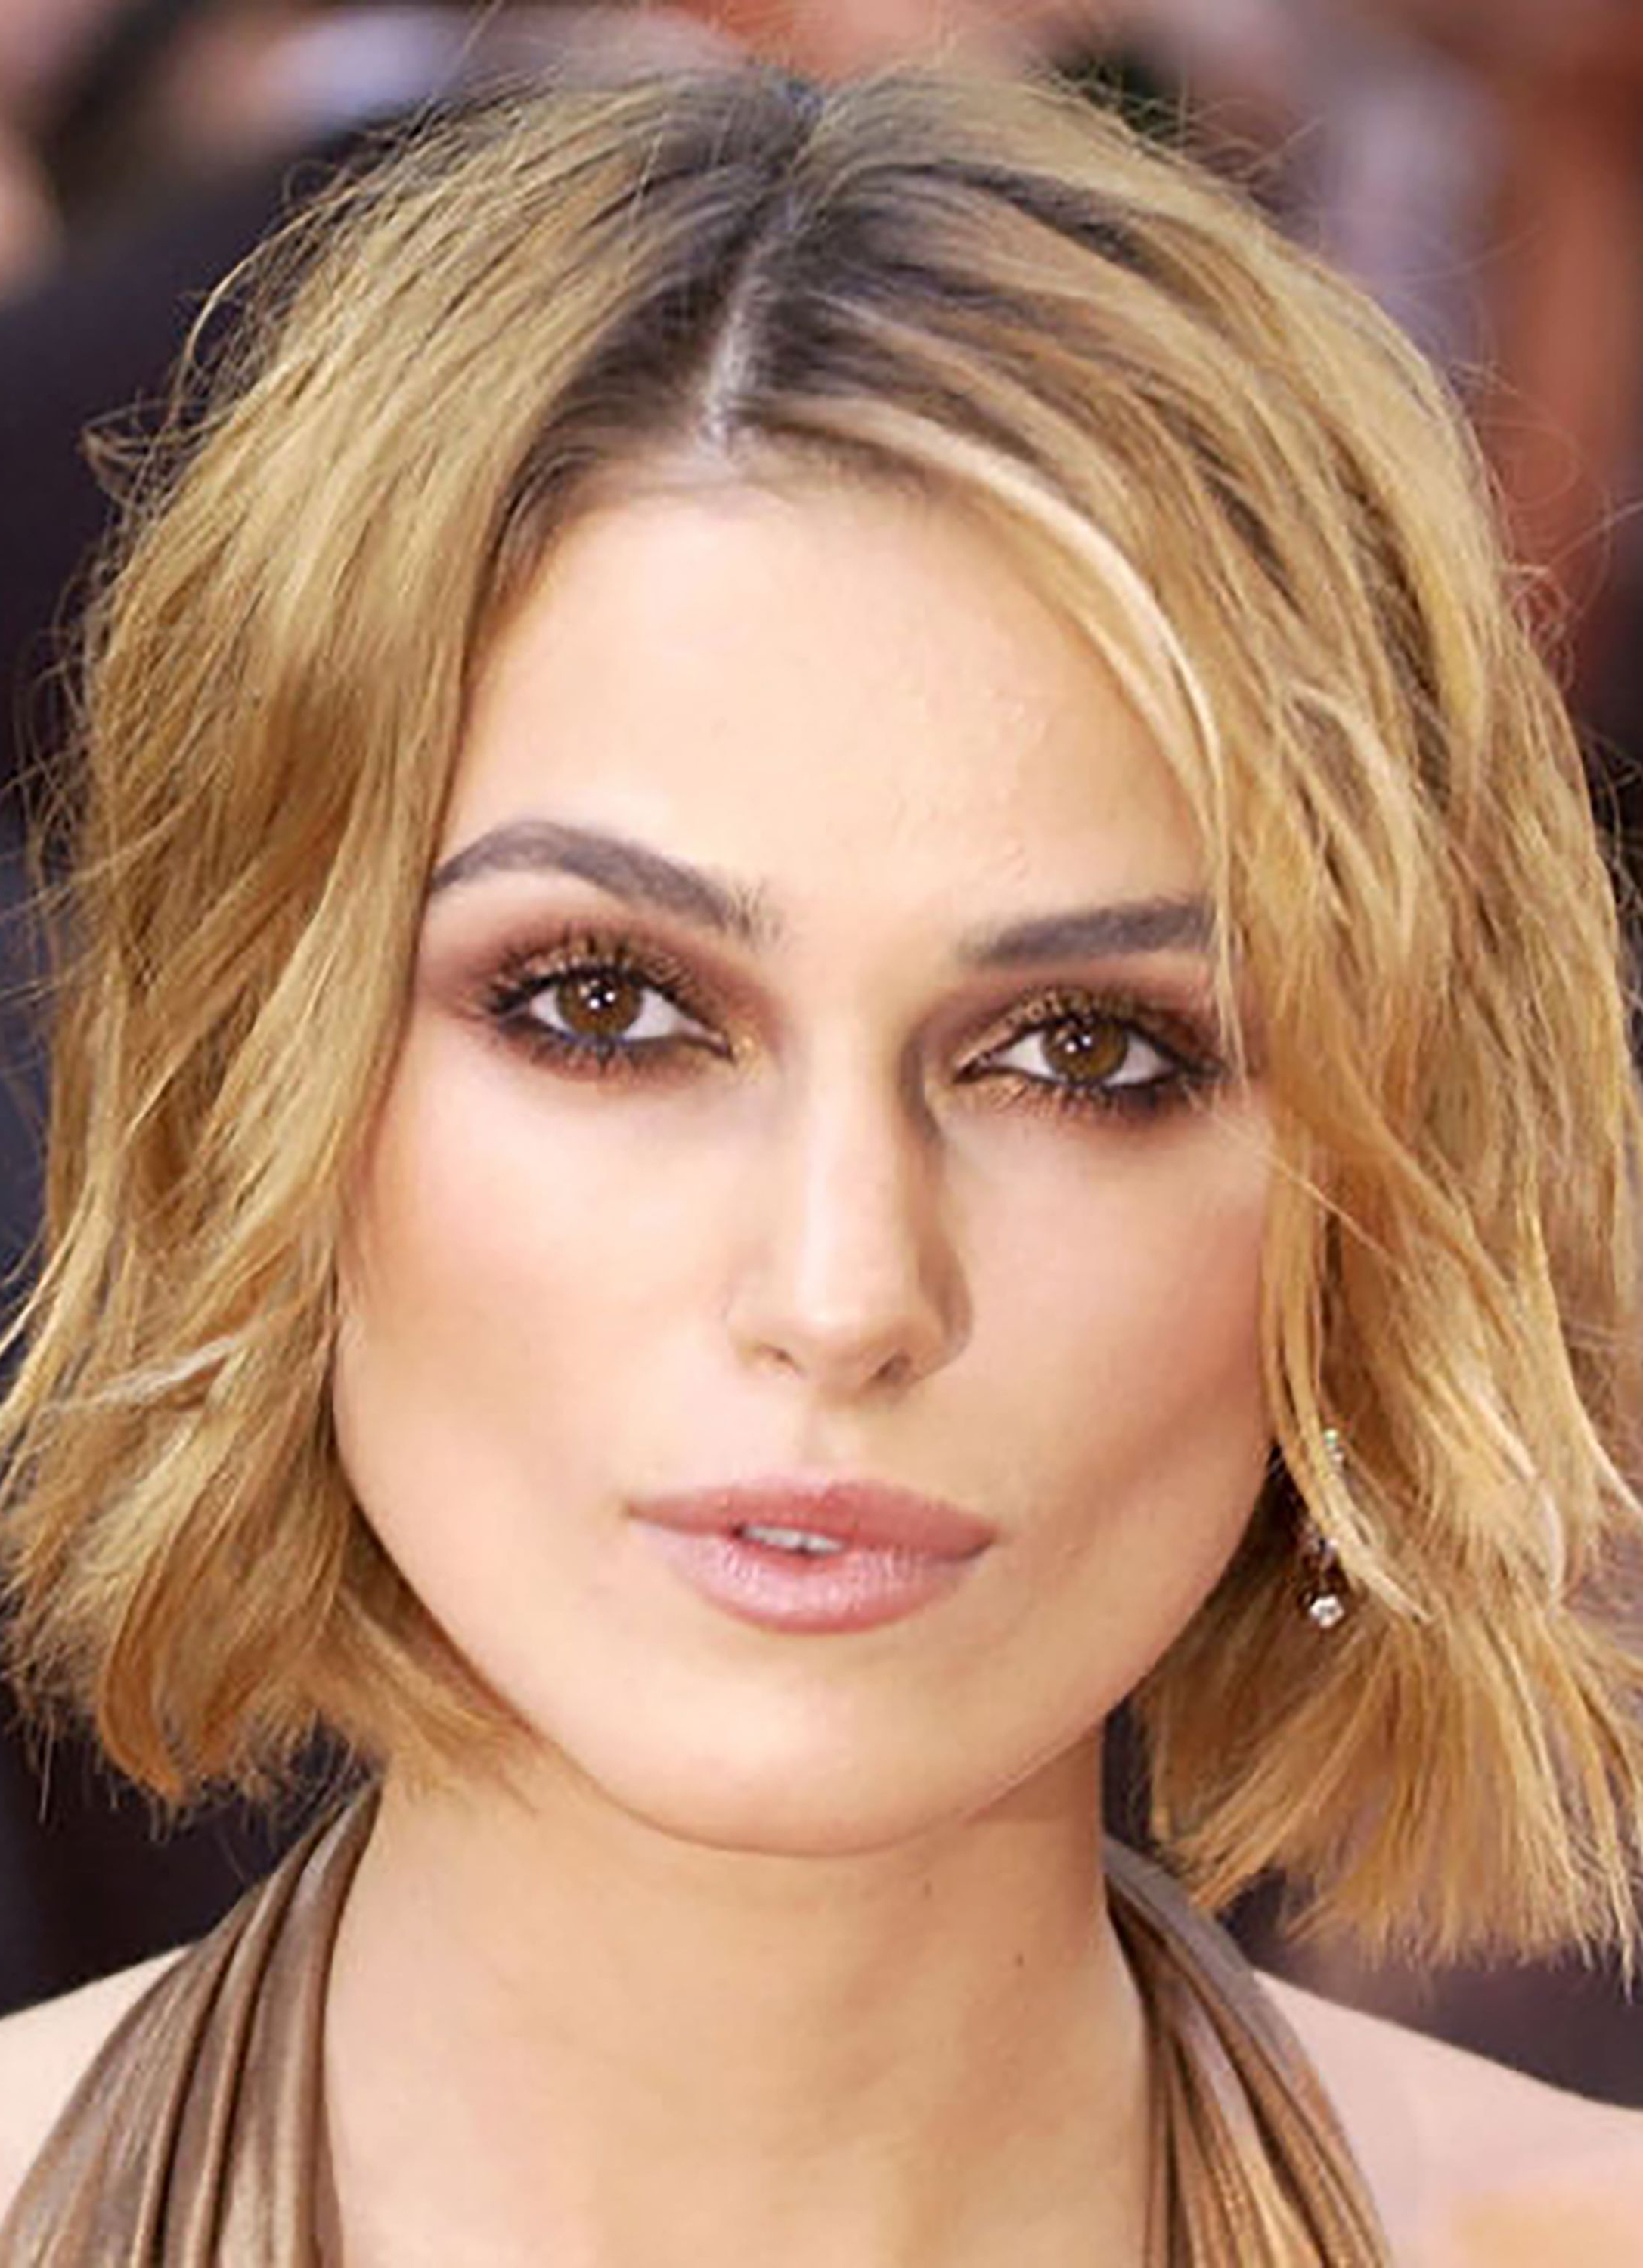 35 Cute Short Haircuts For Women 2018 – Easy Short Female Hairstyle Regarding Keira Knightley Short Hairstyles (View 17 of 25)